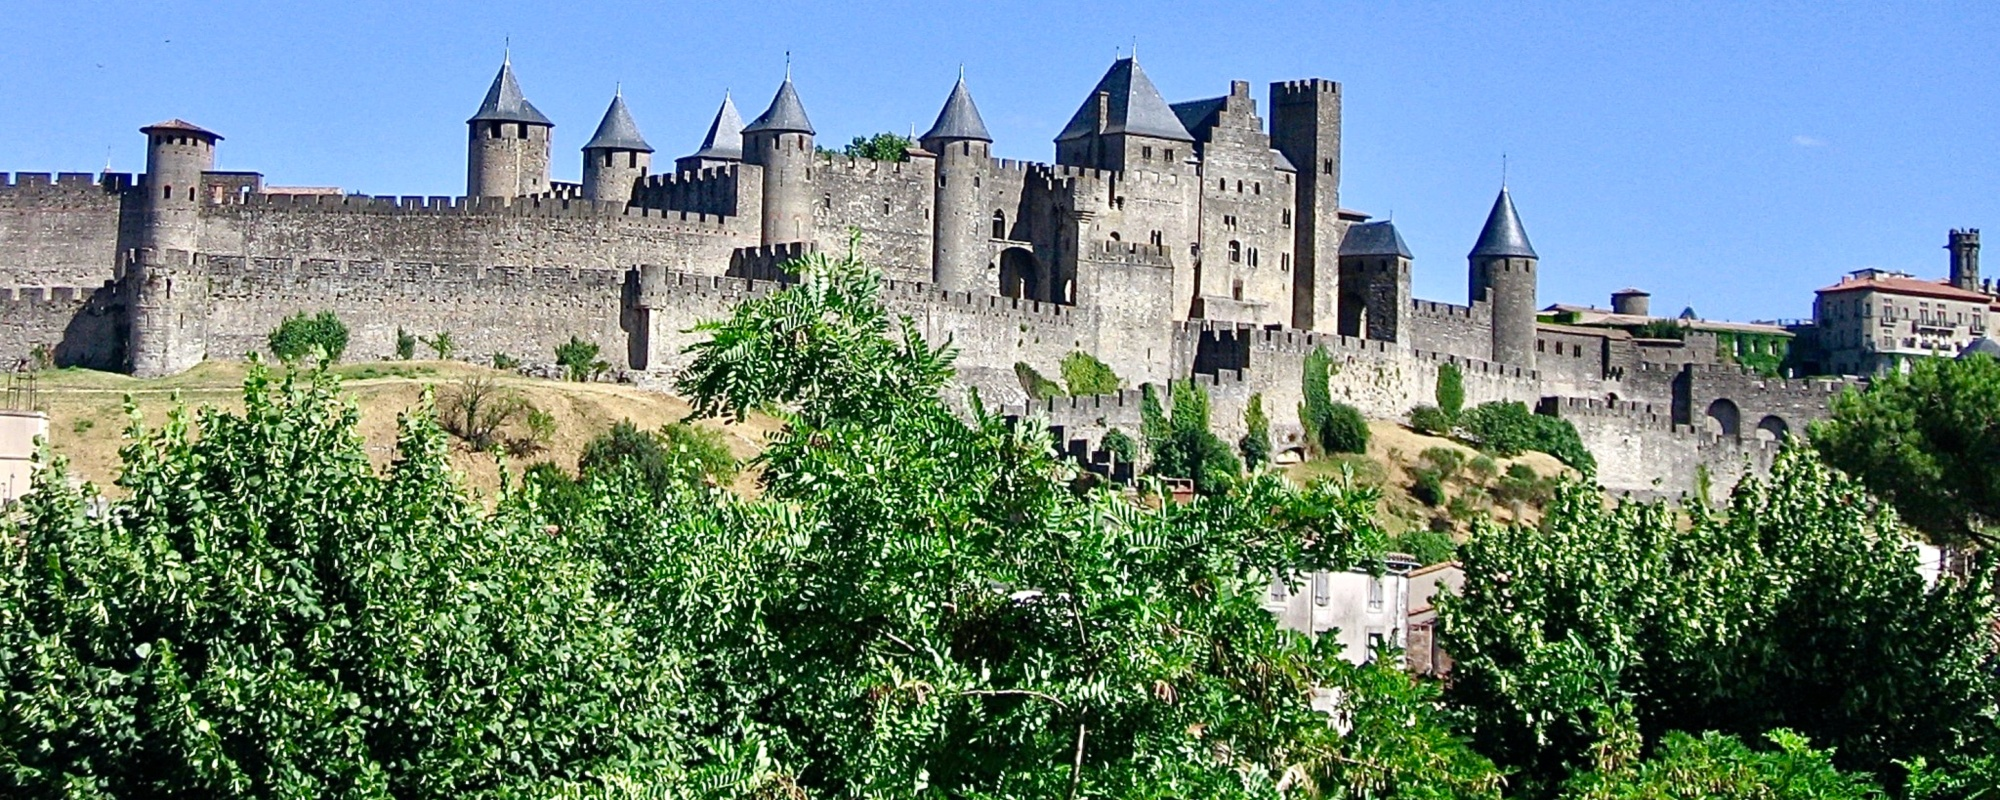 Wide view of exterior of grey medieval castle with crenellated walls and several turrets.